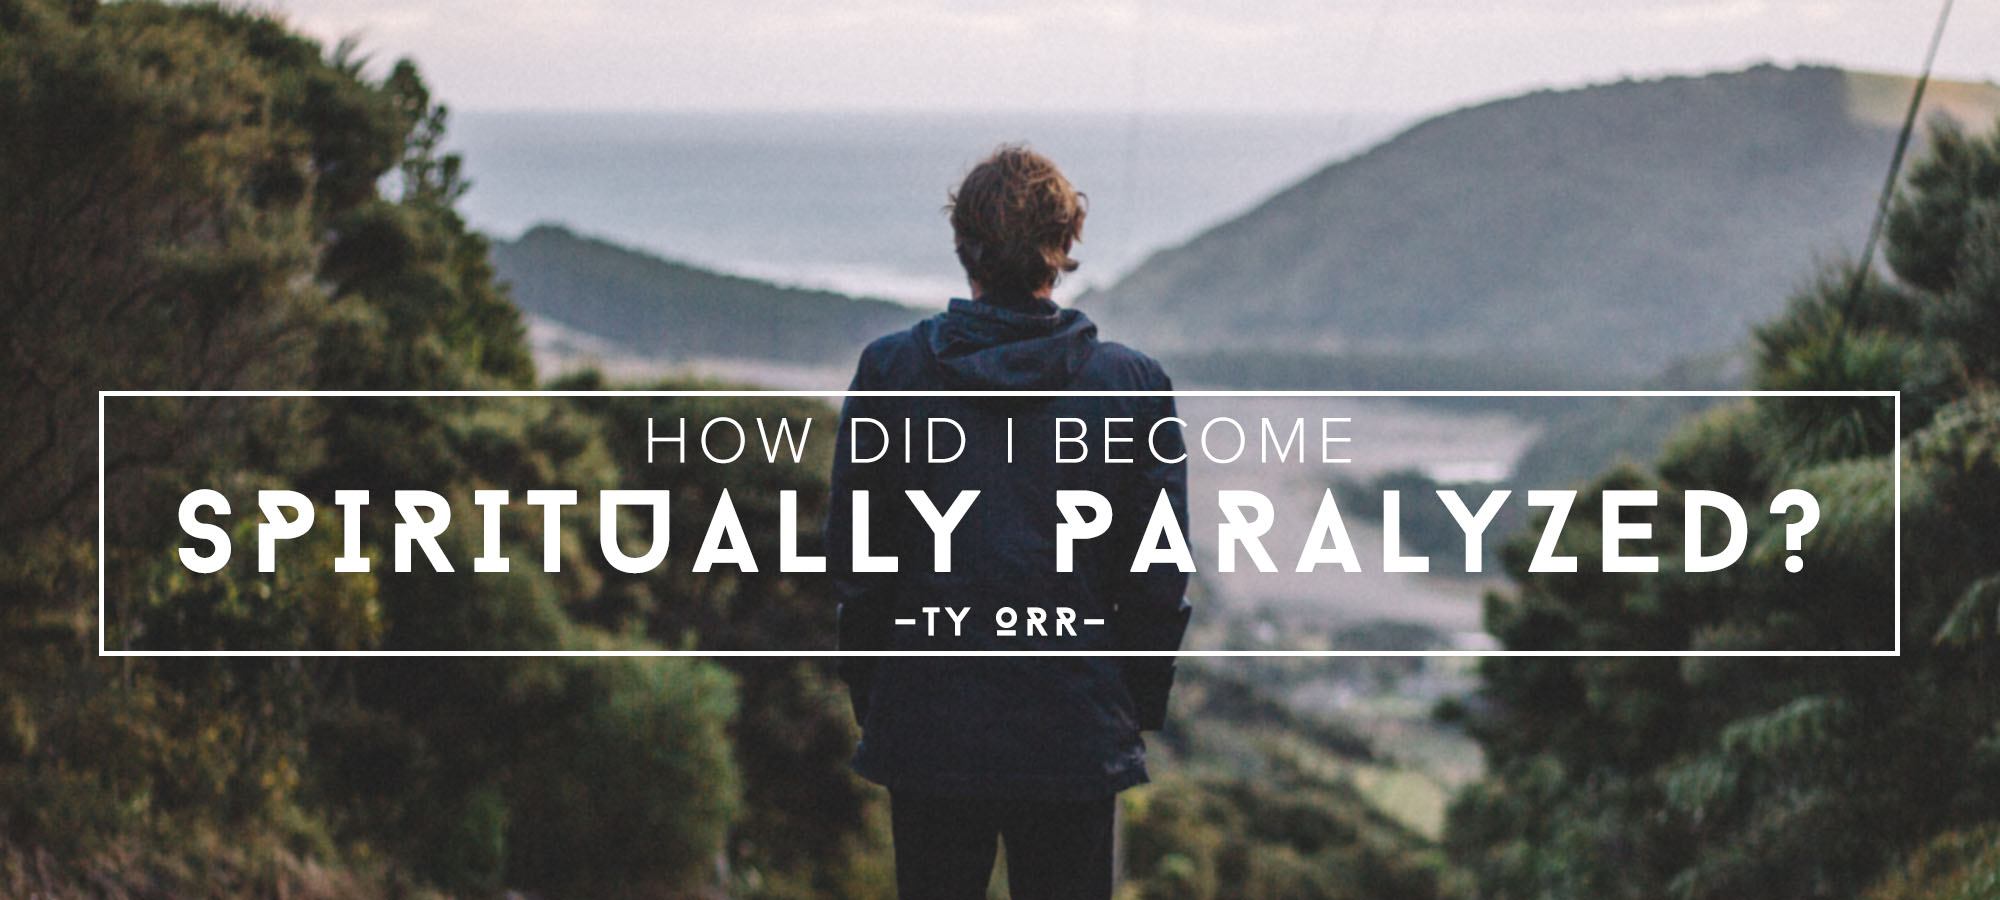 How Did I Become Spiritually Paralyzed?